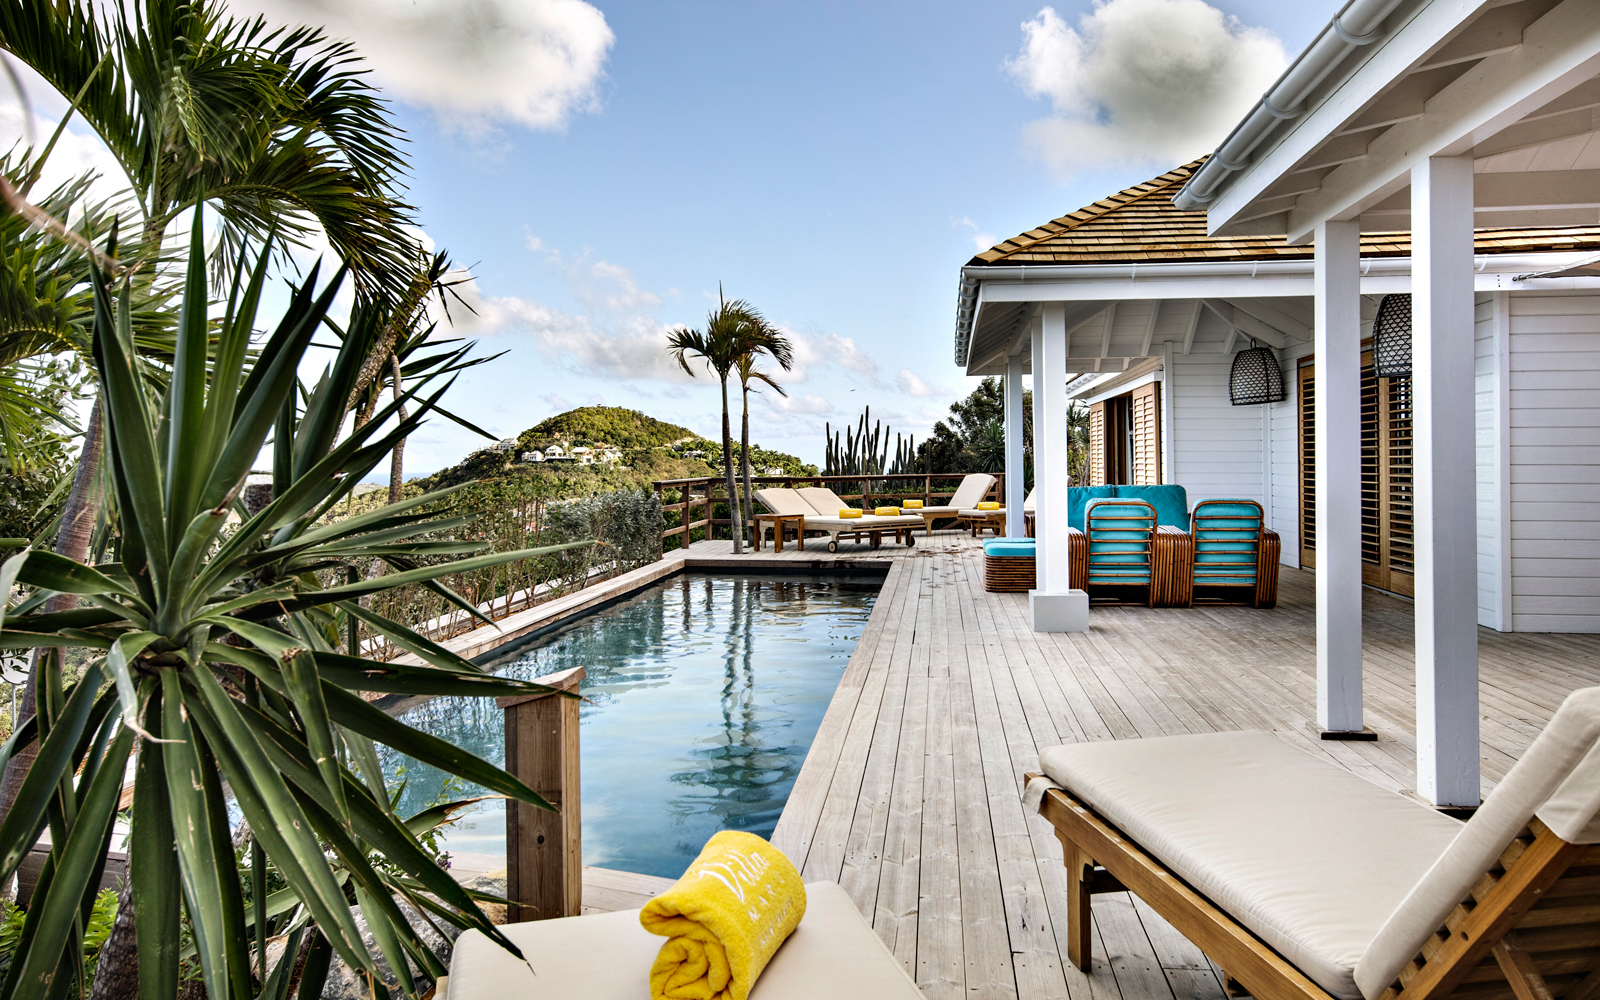 Get 30% off a Three-night Stay in a Tropical Bungalow in St. Bart's